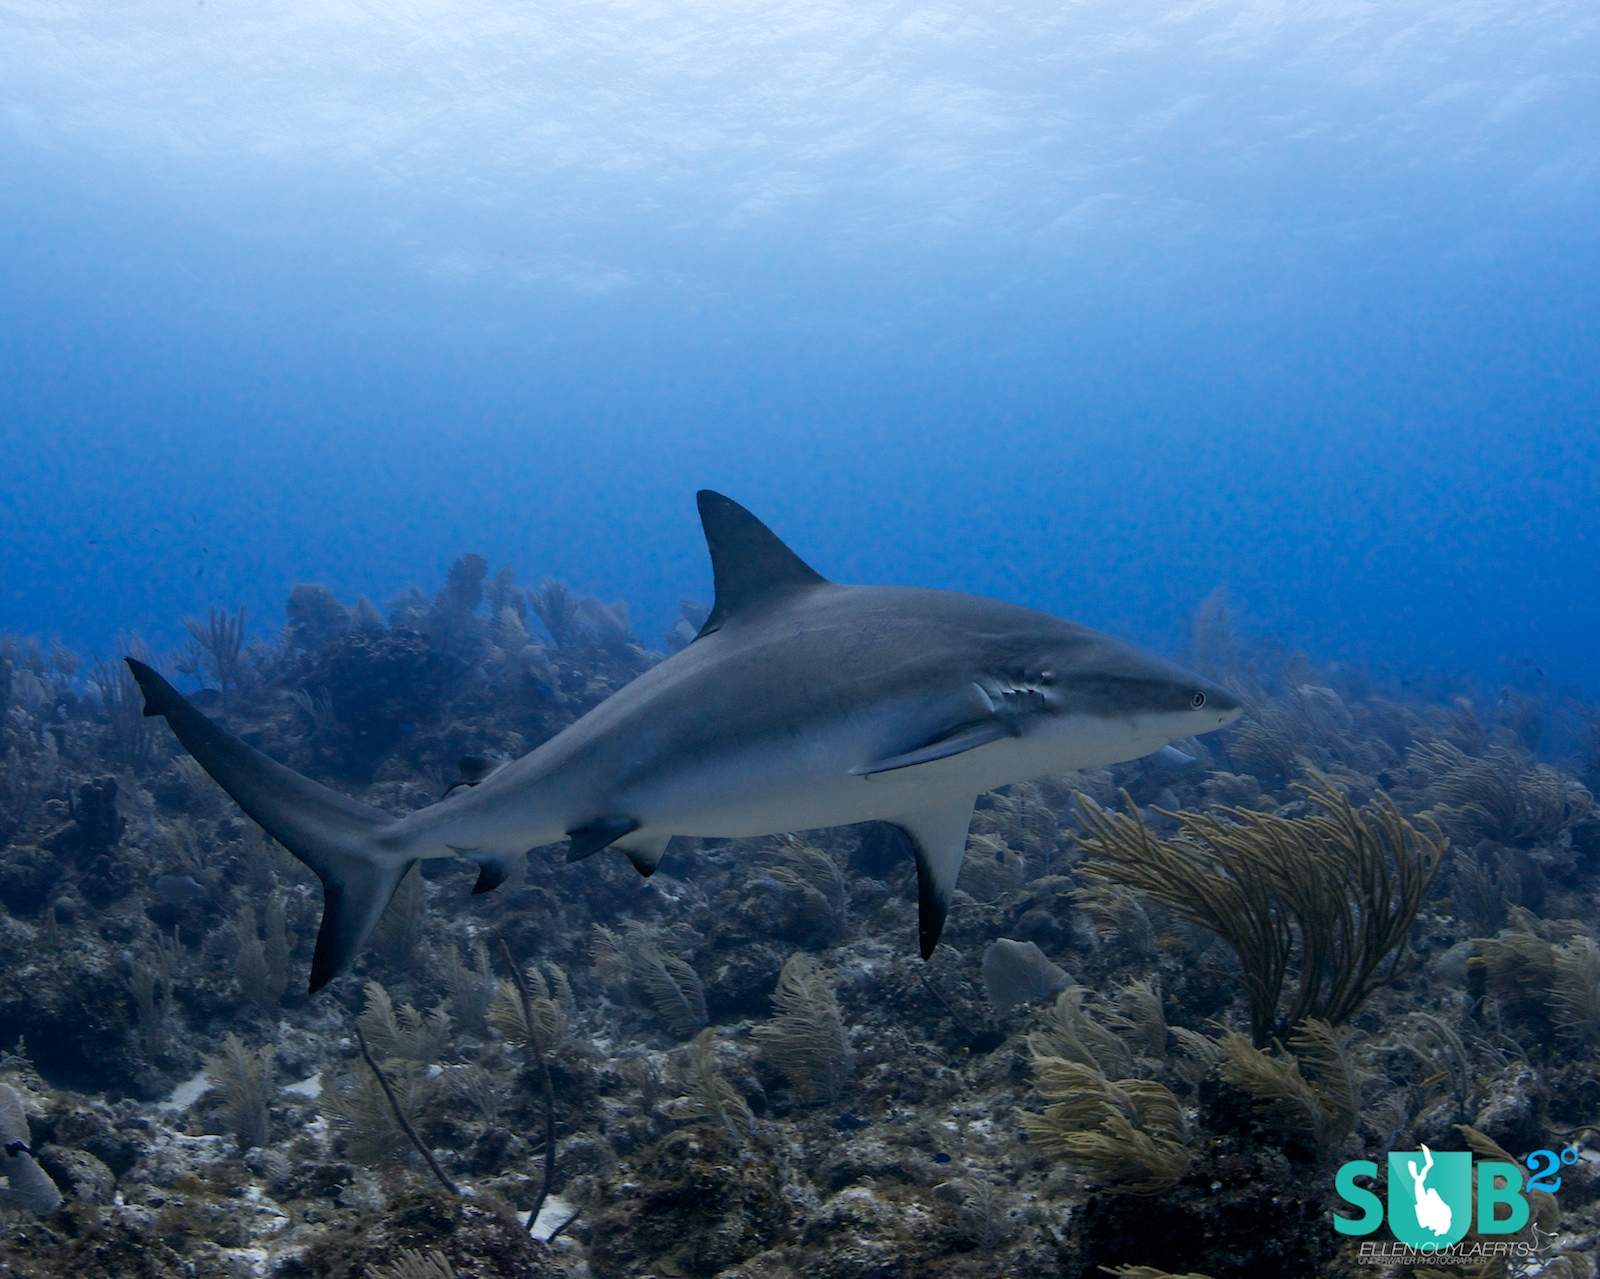 An arched back or fins down can be signs of irritation and might be signs to leave the scene, especially with less experienced divers in the group. Heartbeats tend to go up and sharks are very good at picking this up, with more bold behavior following.